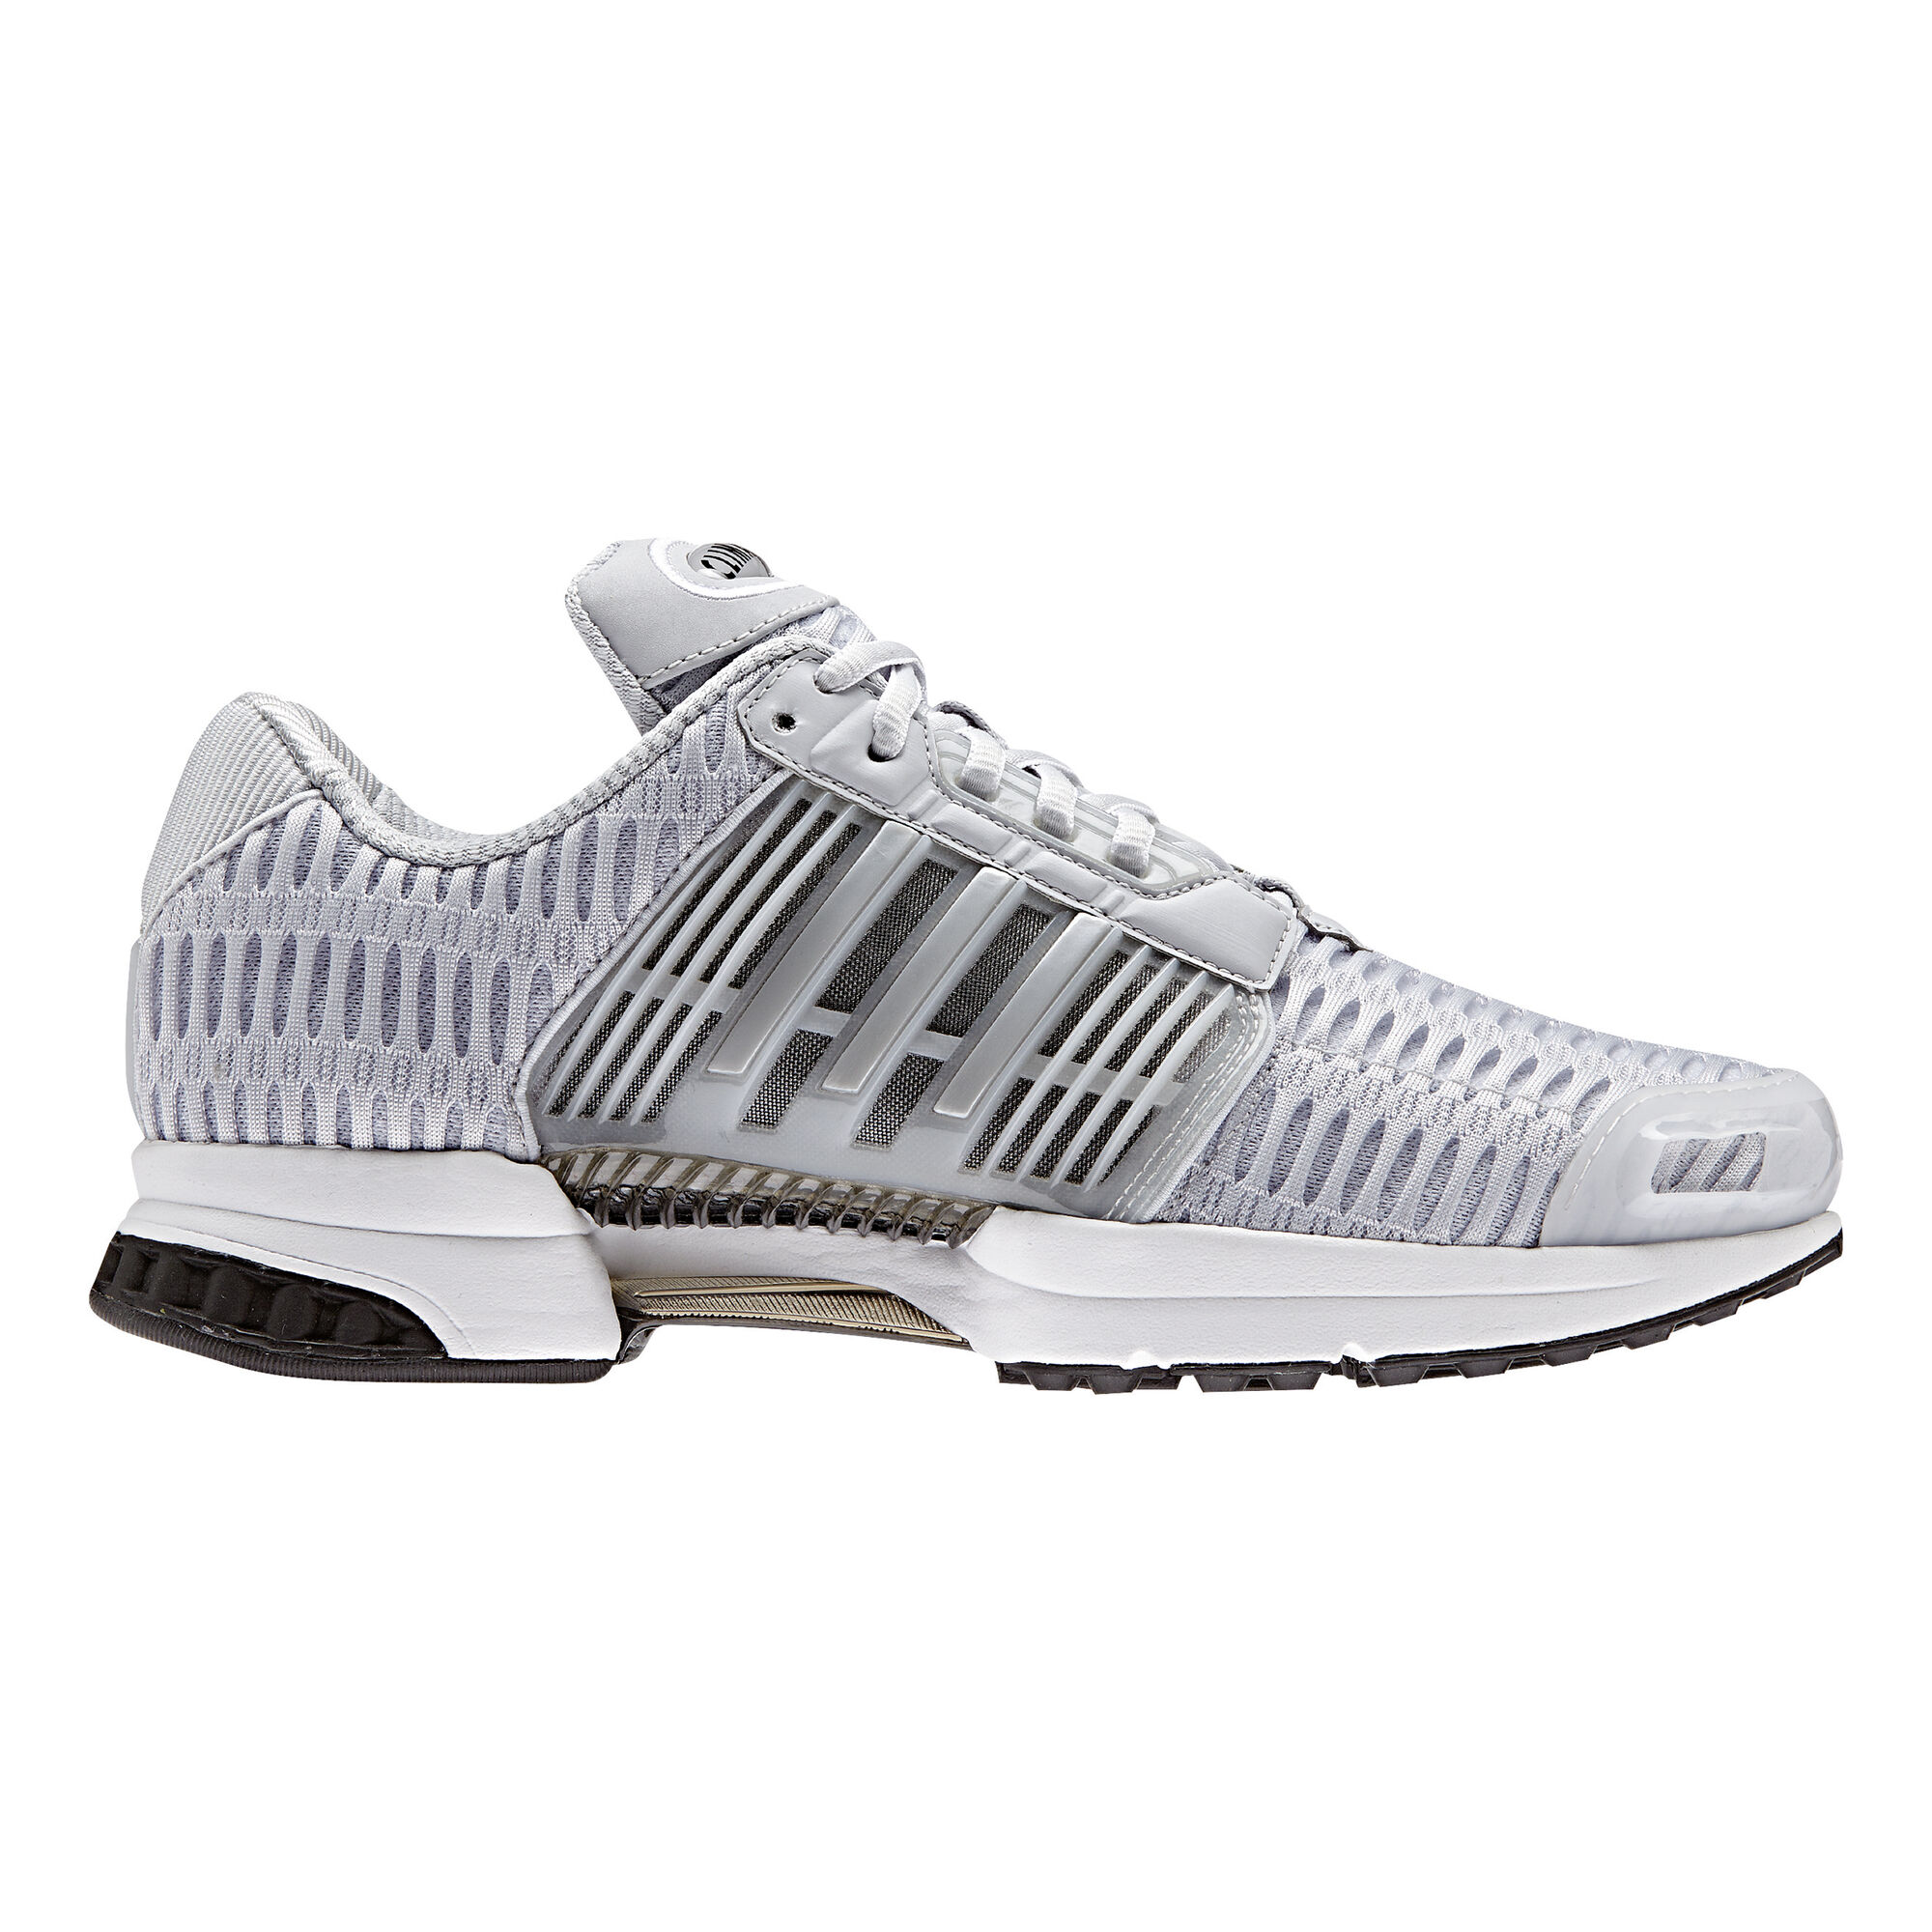 quality design 63086 206be adidas · adidas · adidas · adidas · adidas. Climacool 1 ...